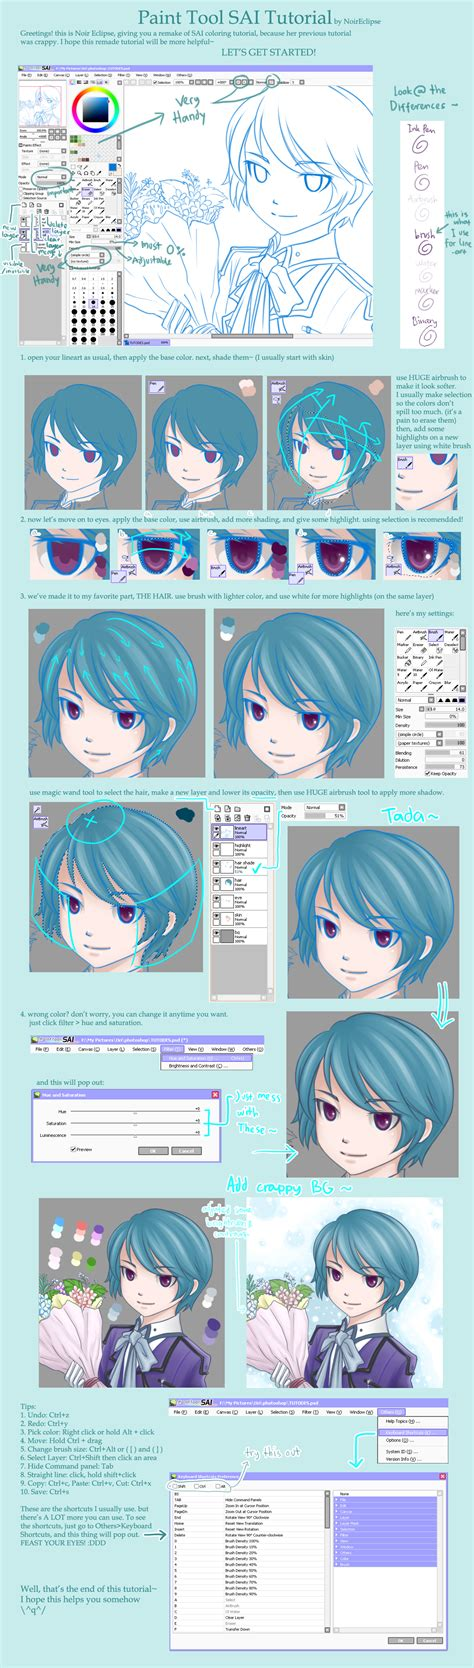 paint tool sai tutorial paint tool sai tutorial by noireclipse on deviantart